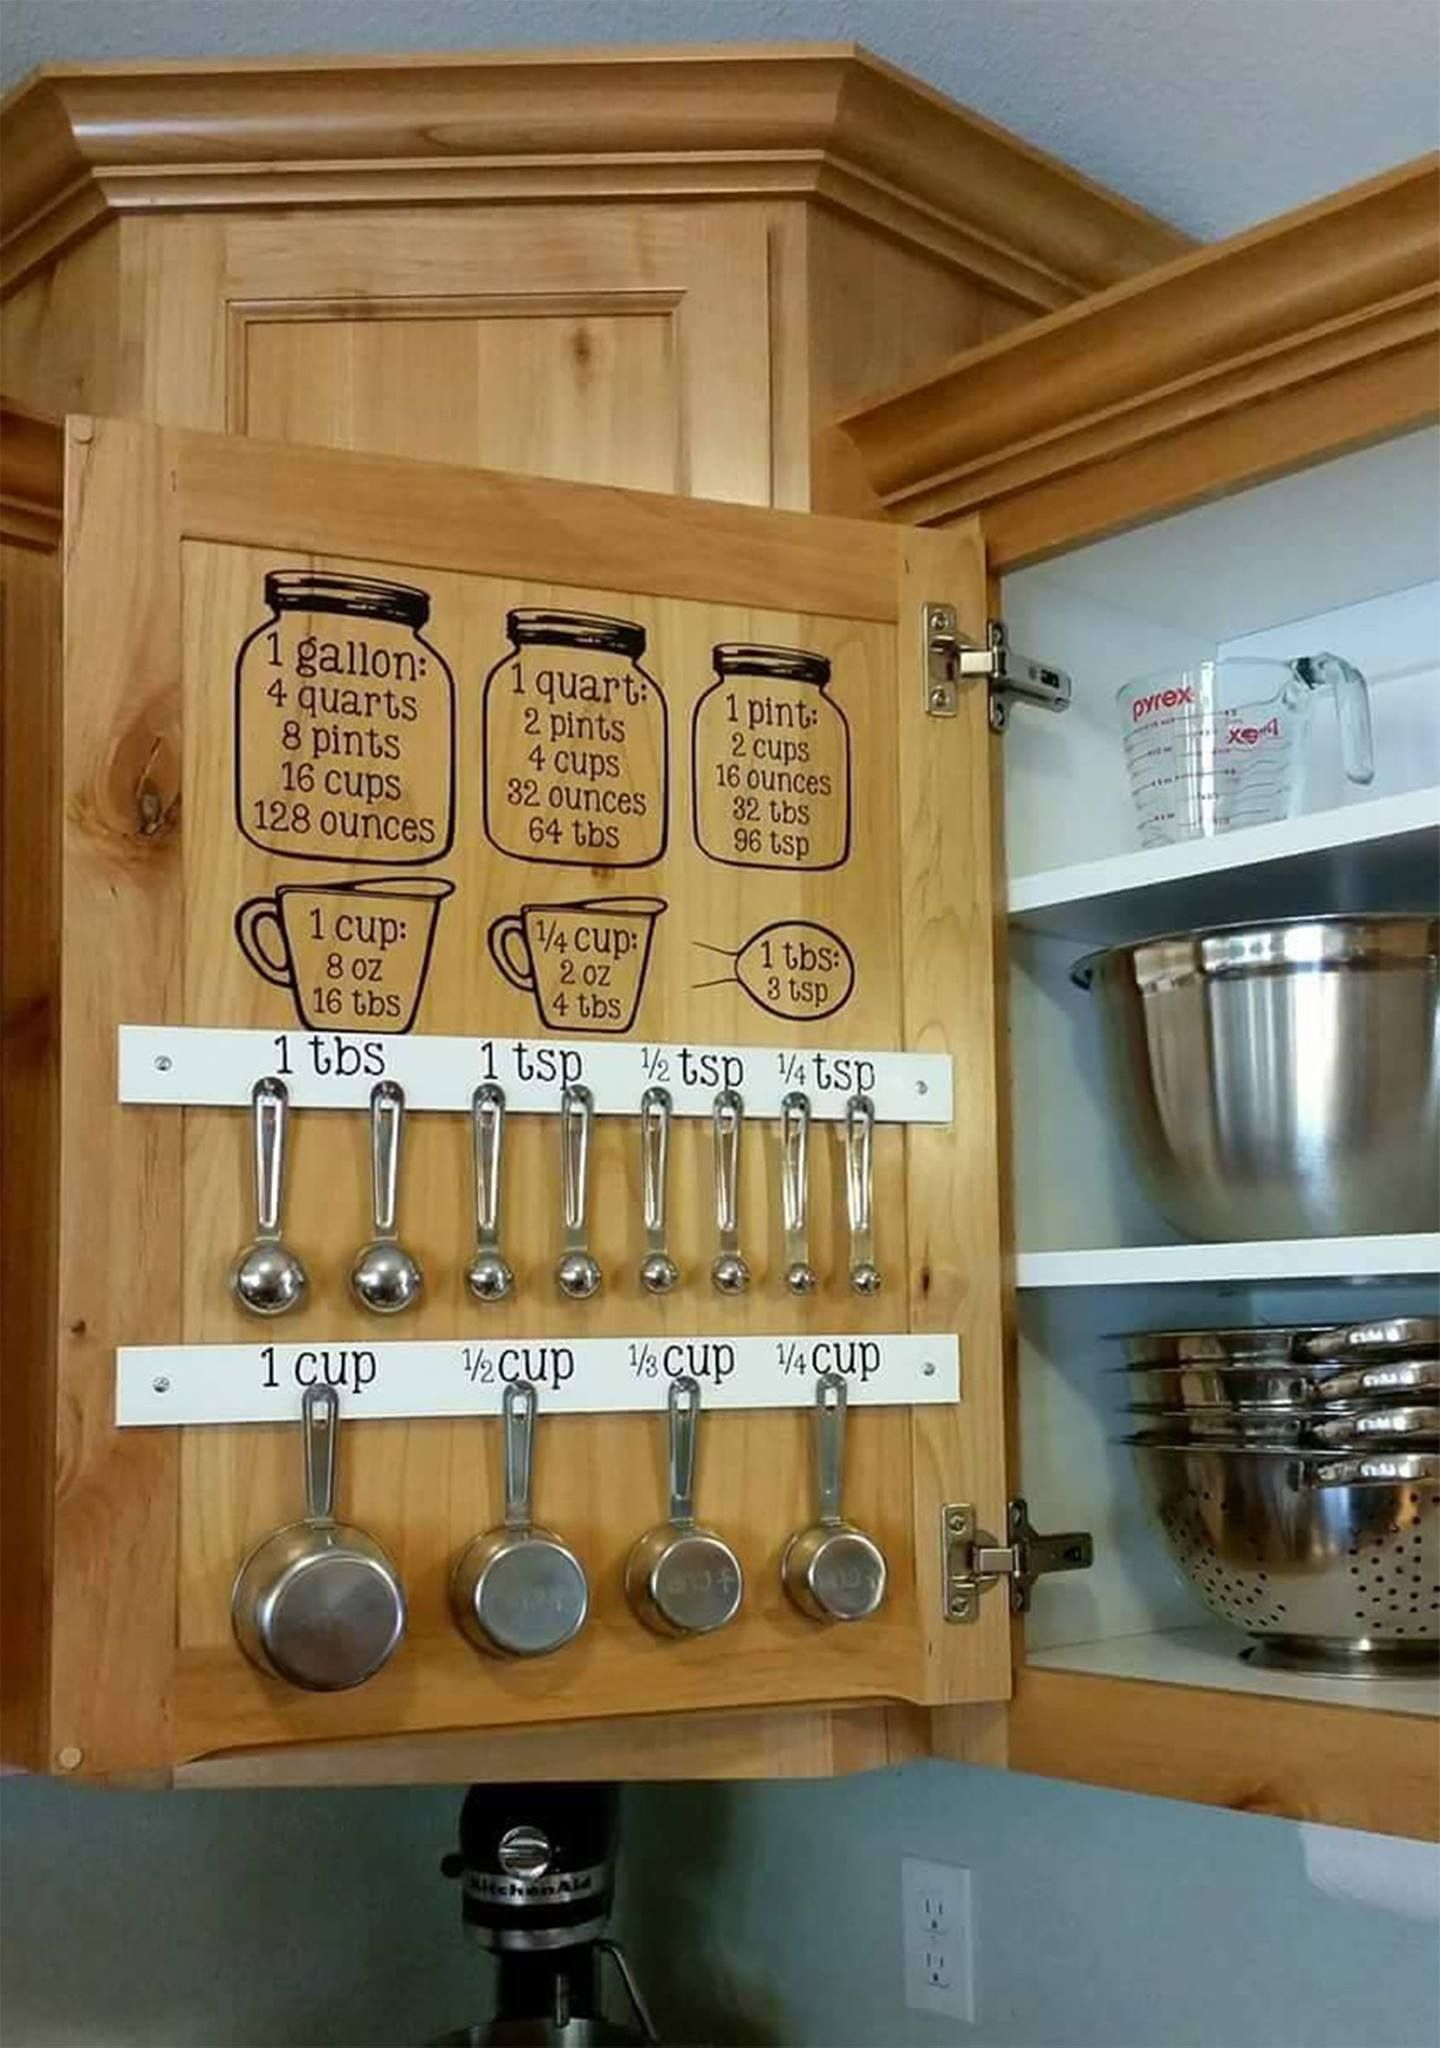 Dachboden über küchenideen keep your kitchen tools easy to get to and conversion chart  haus